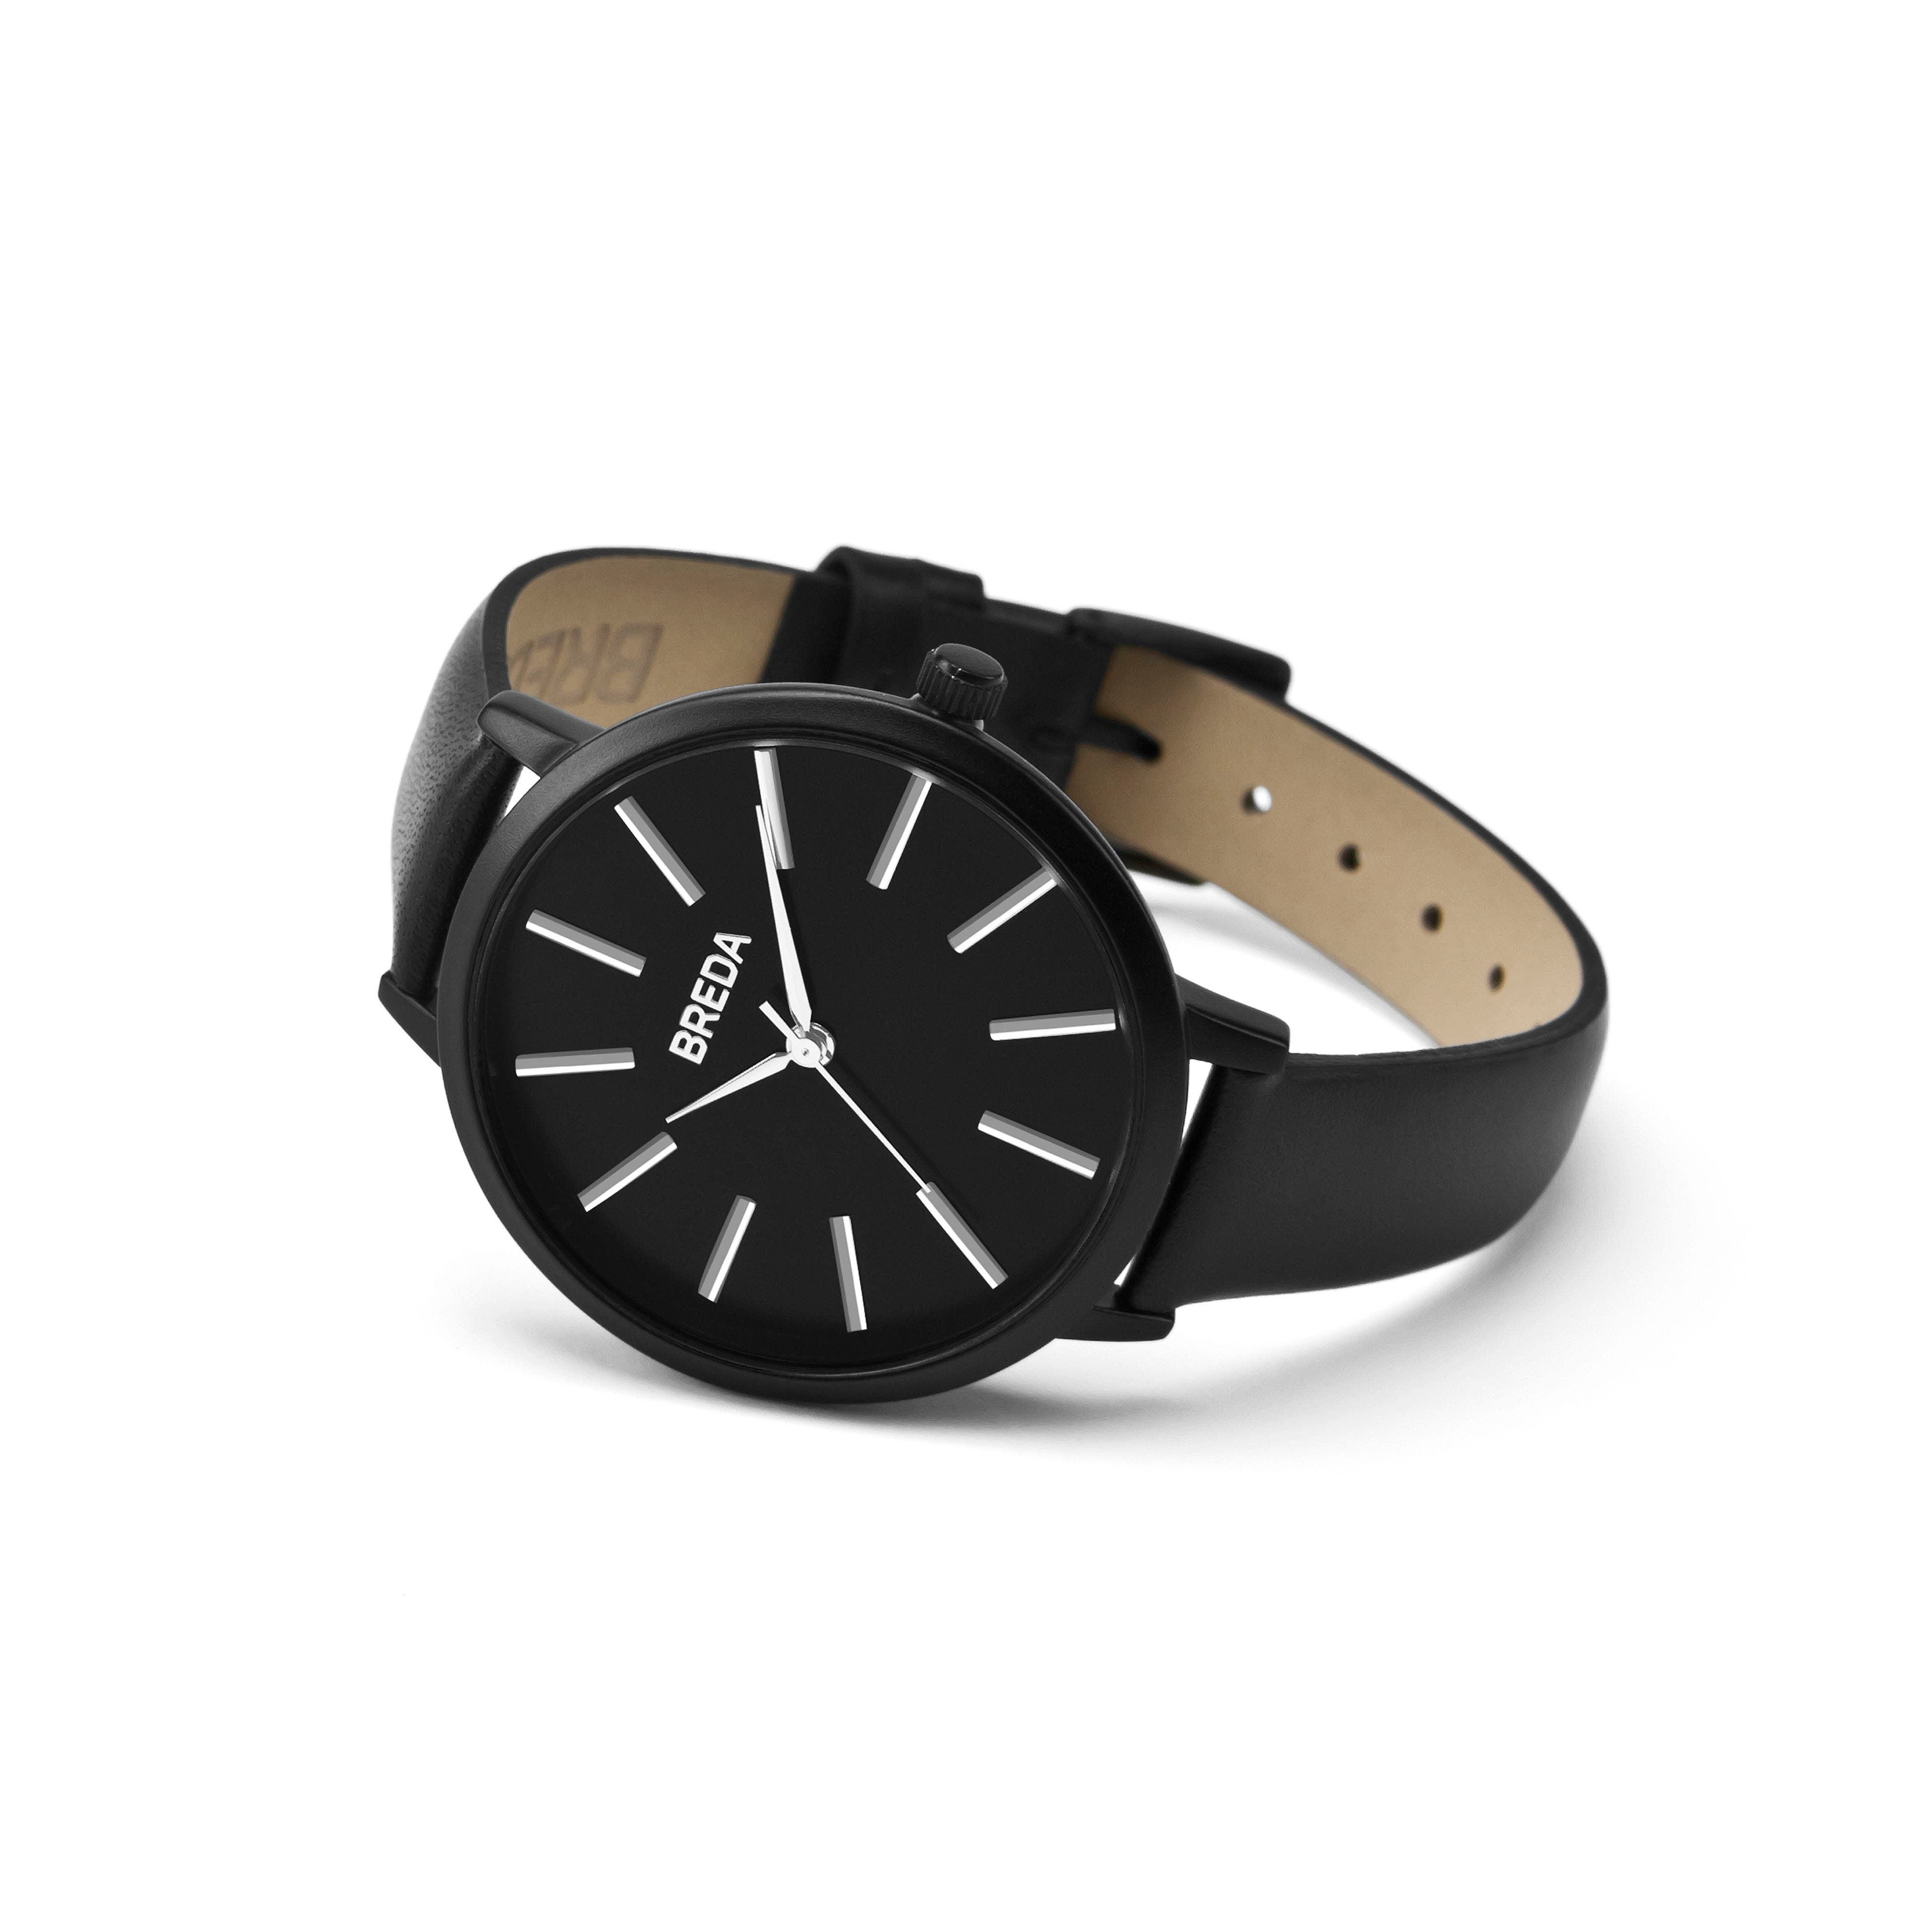 Joule Round Leather Strap Watch, 37mm,                             Alternate thumbnail 2, color,                             Black